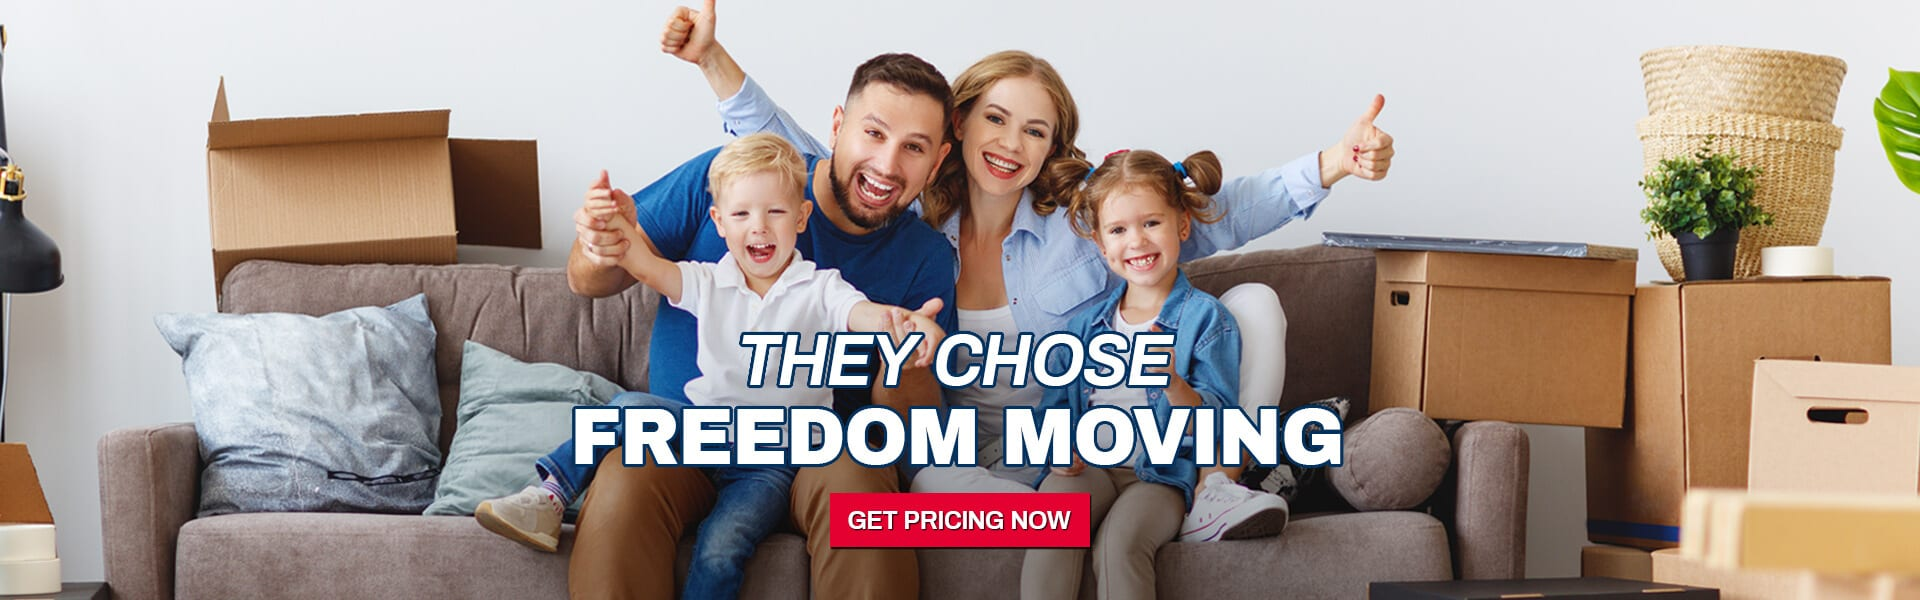 Freedom Moving Company Bowie Maryland